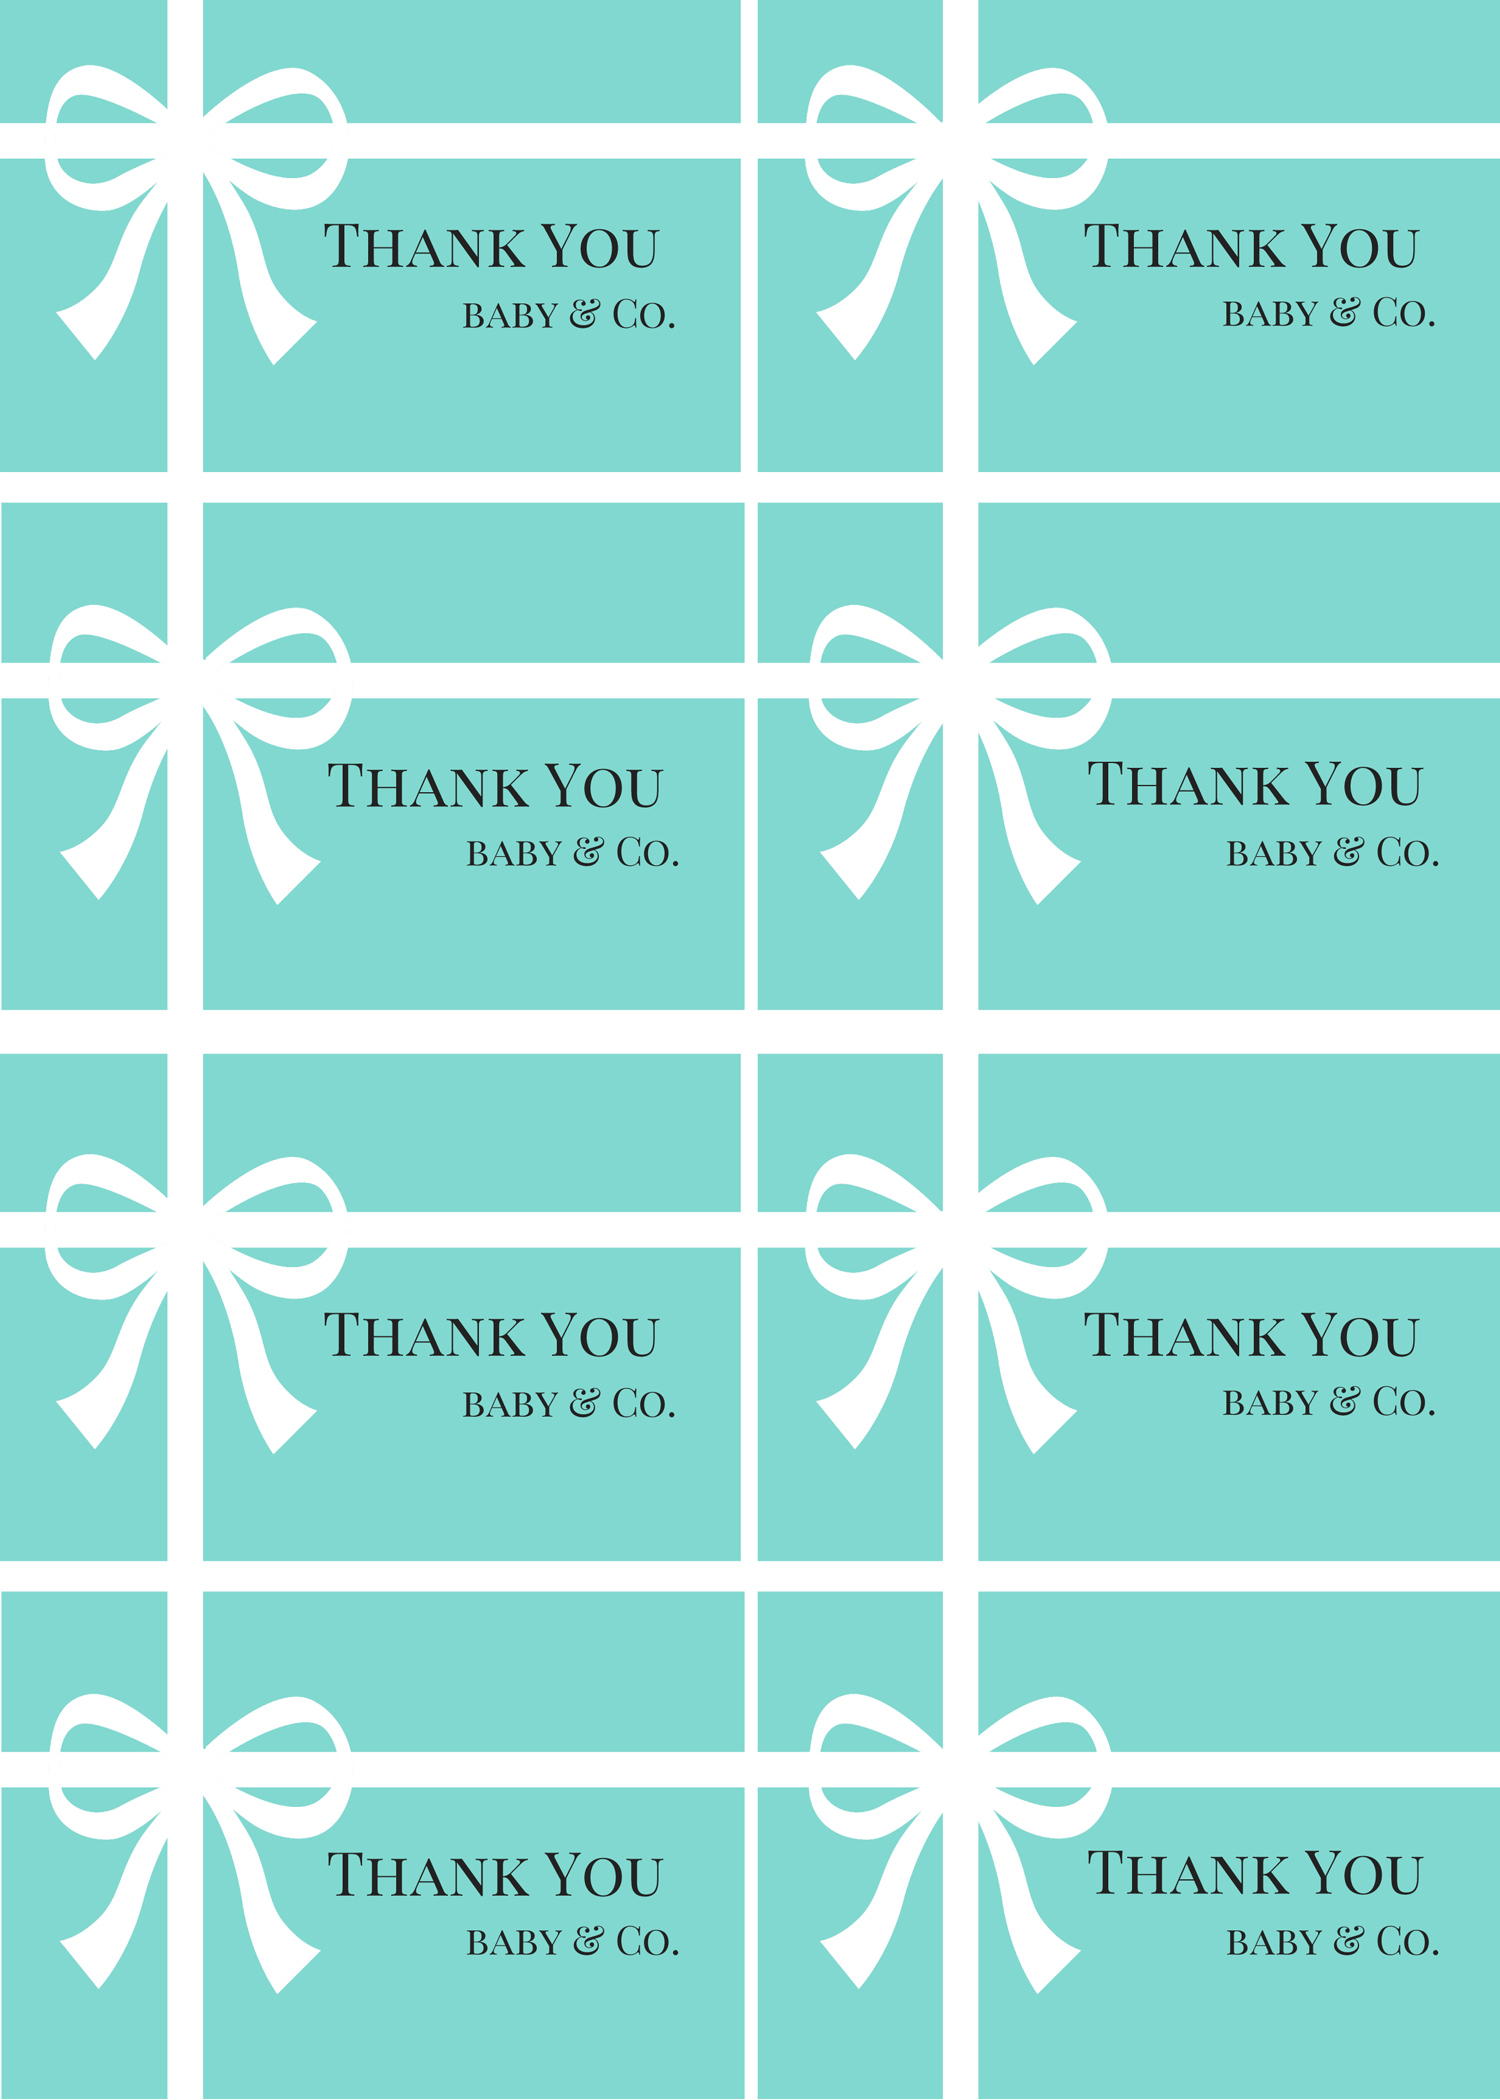 Free Baby Shower Thank You Tags Printables - Baby Shower Ideas - Free Printable Baby Shower Labels And Tags